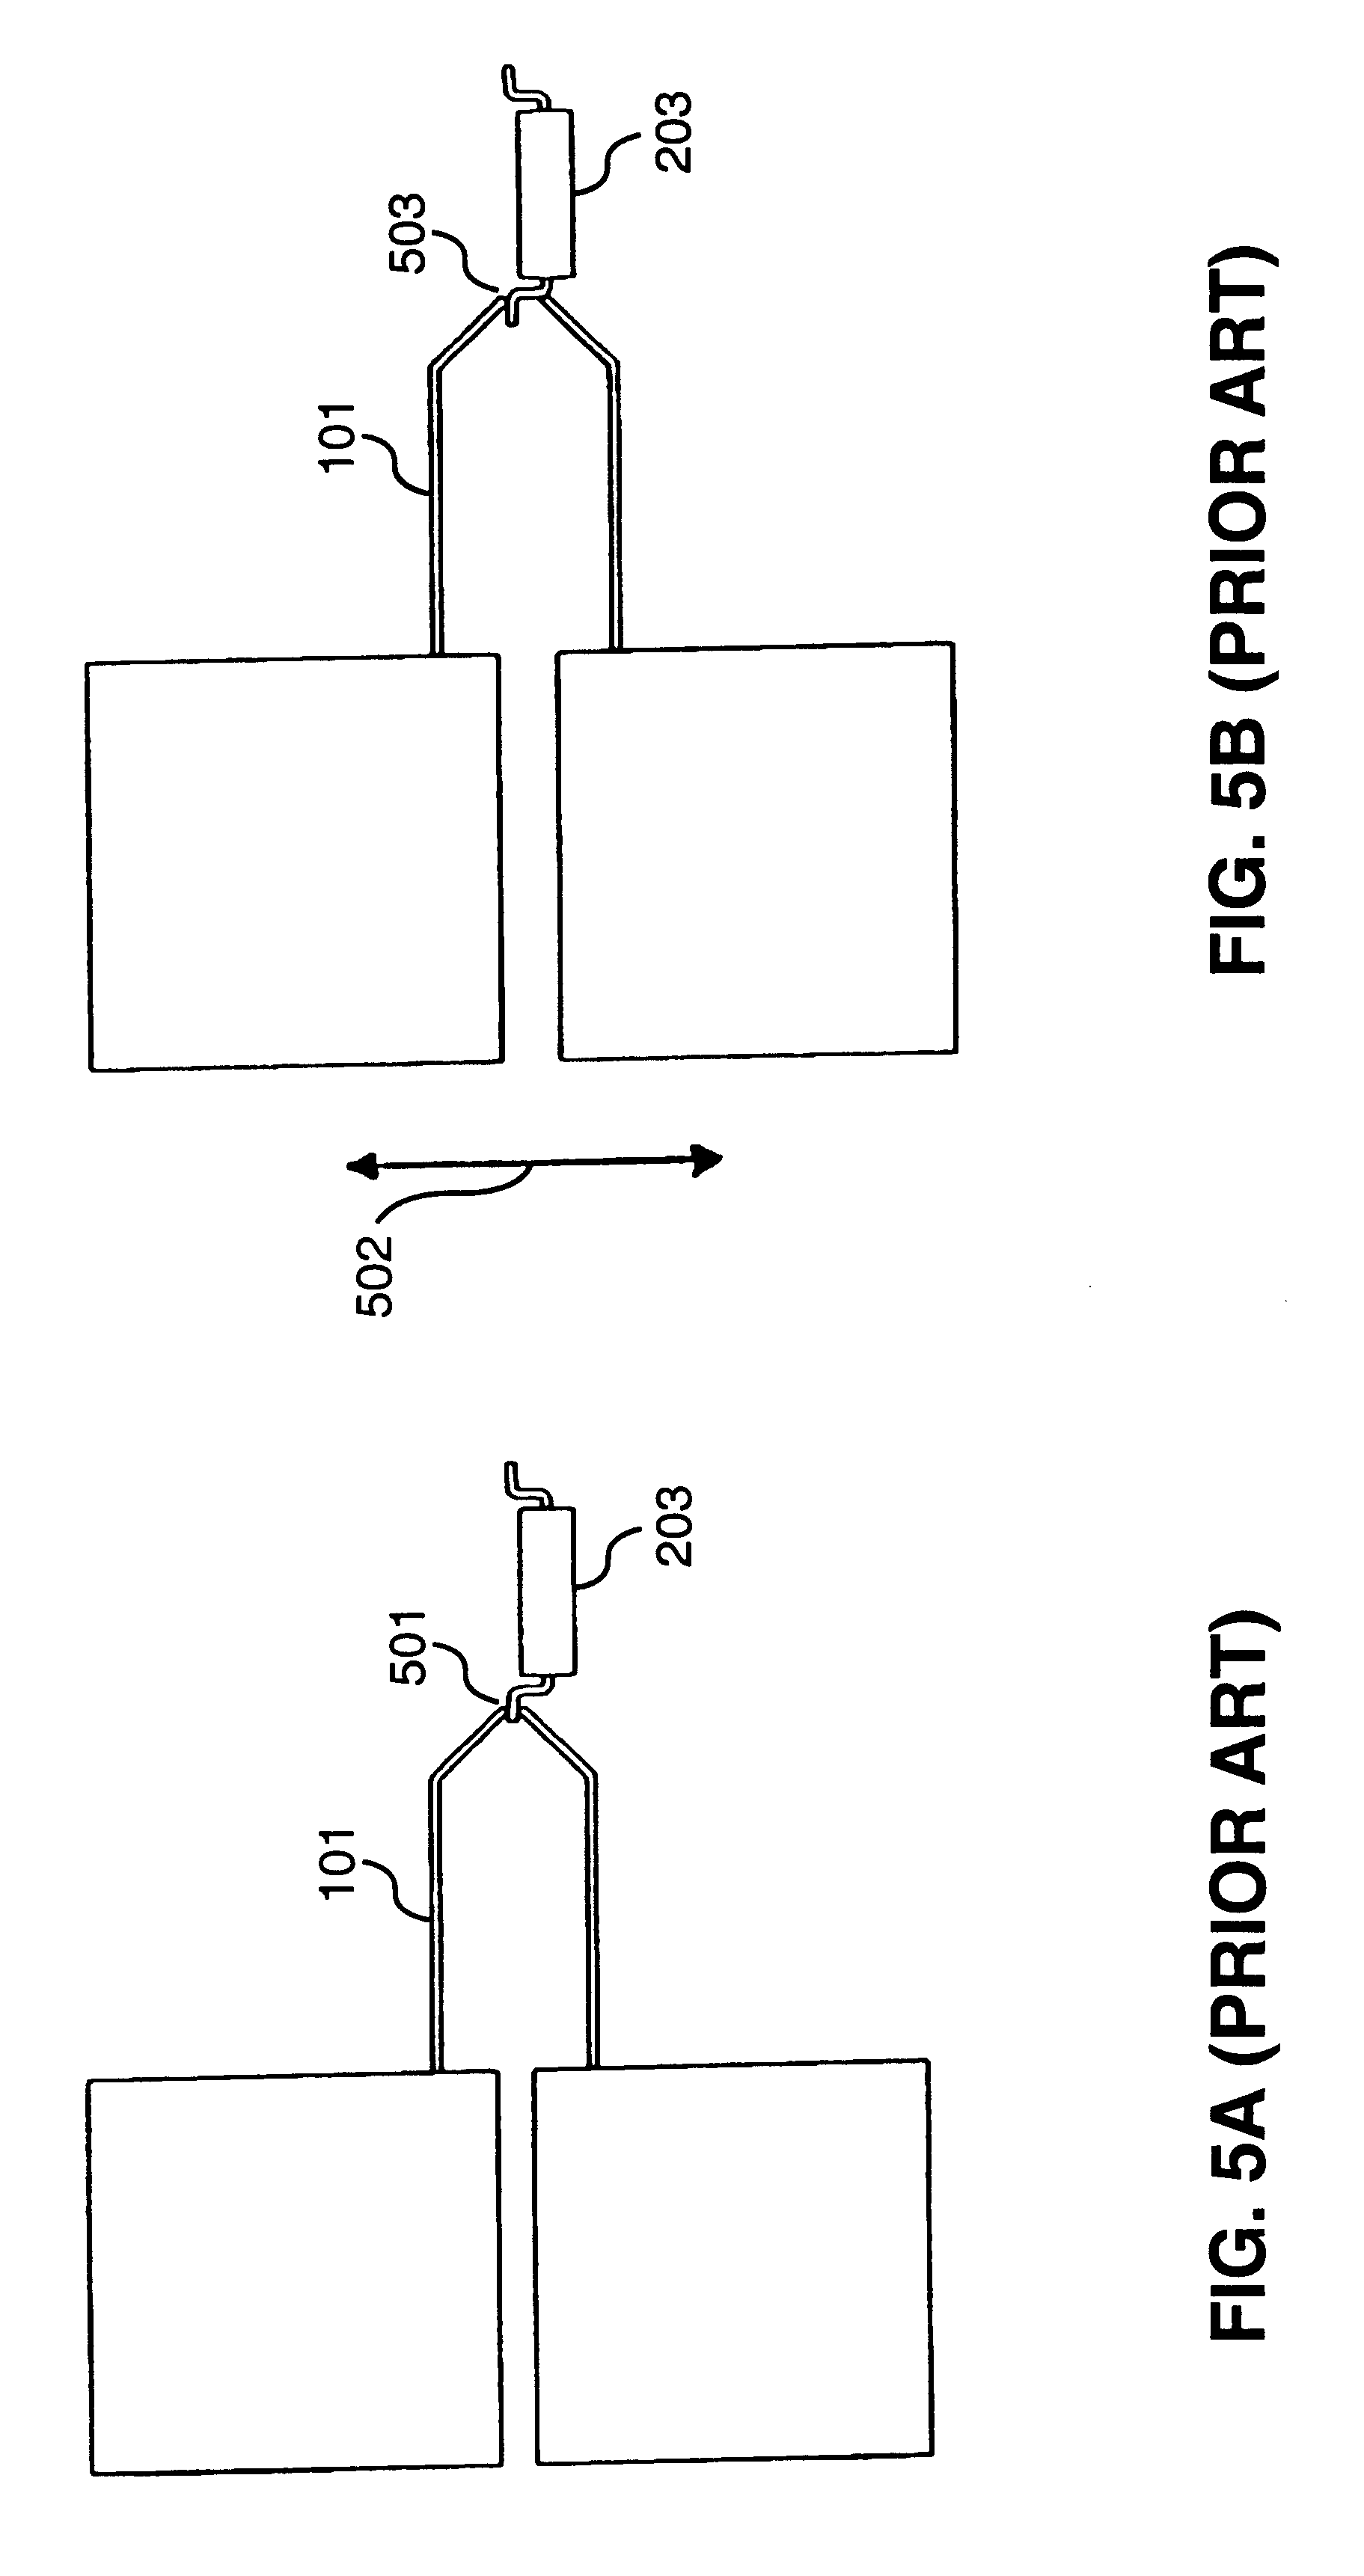 patent us6211687 - connector contact fingers for testing integrated circuit packages